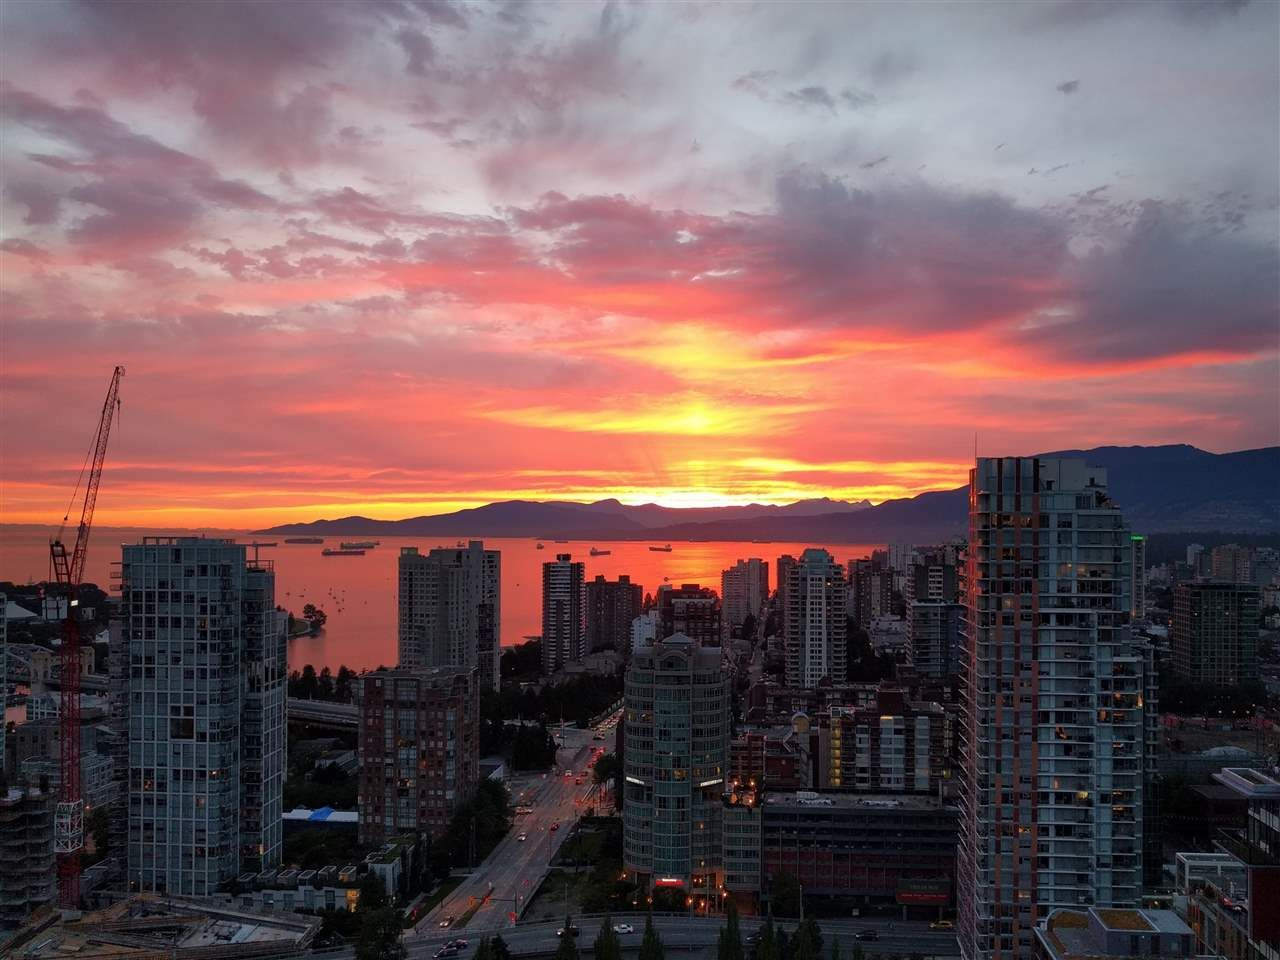 """Main Photo: 3802 1372 SEYMOUR Street in Vancouver: Downtown VW Condo for sale in """"The Mark - Yaletown"""" (Vancouver West)  : MLS®# R2189623"""